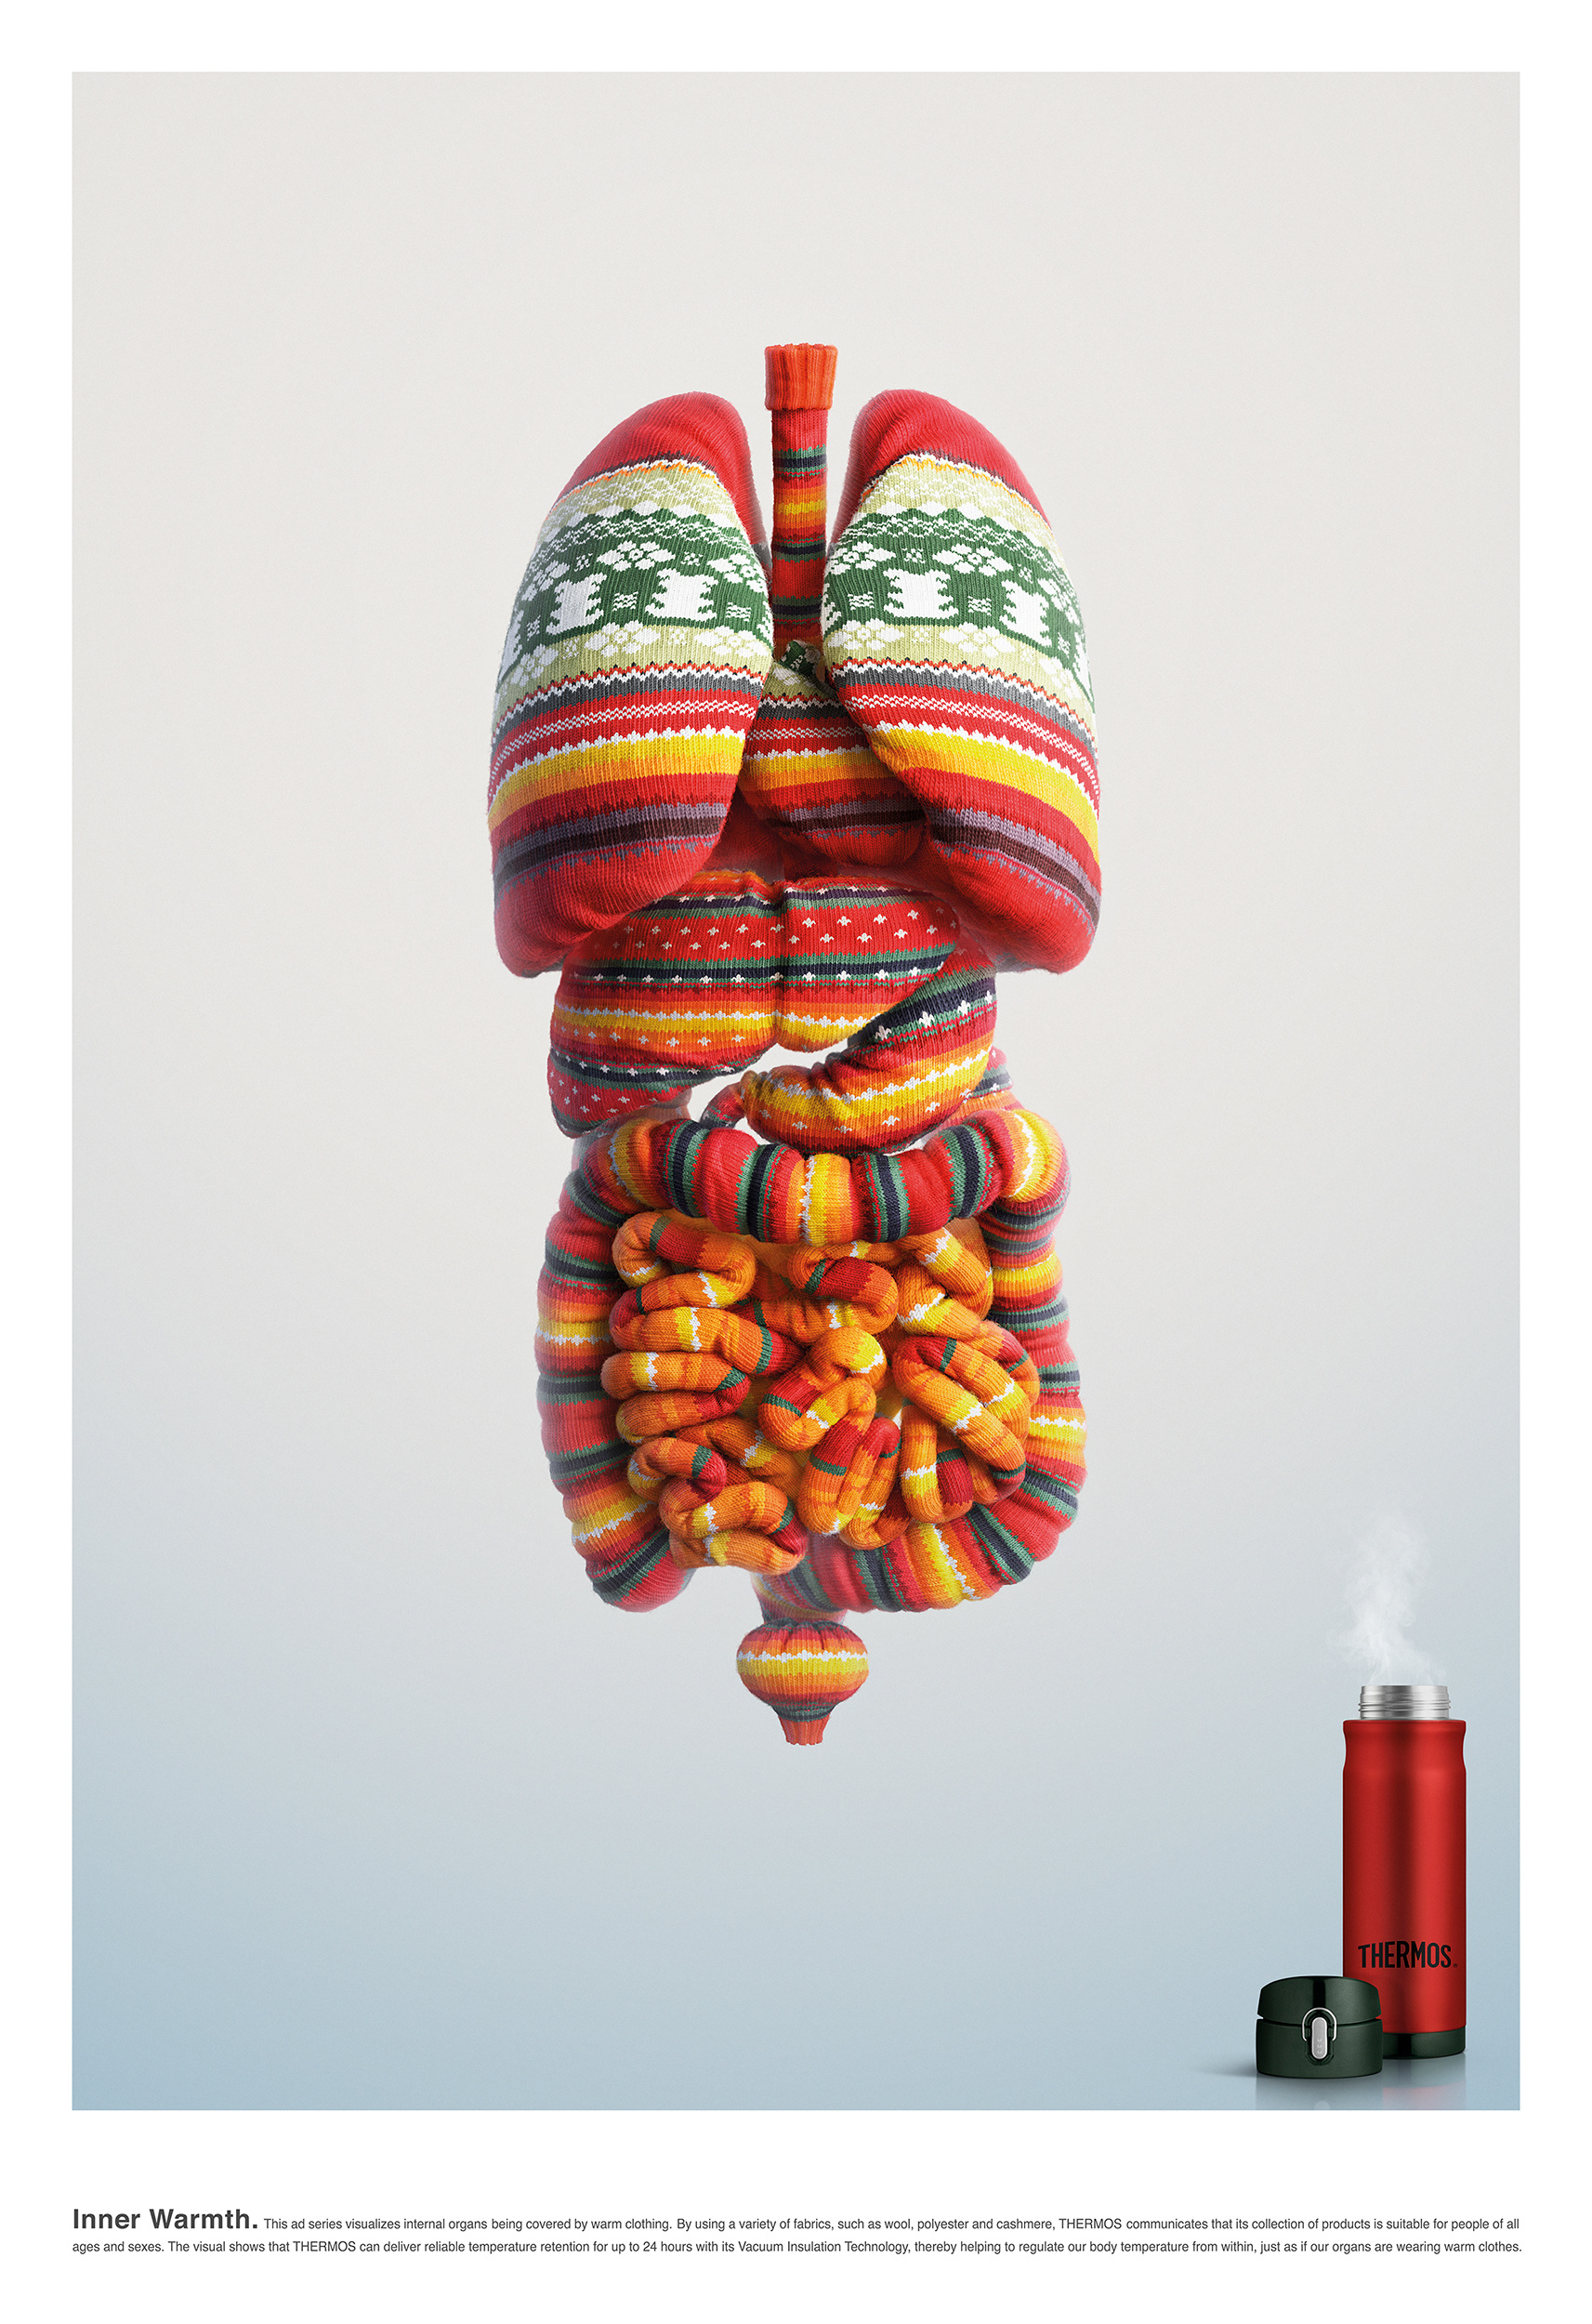 Thermos: Inner Warmth - Wool